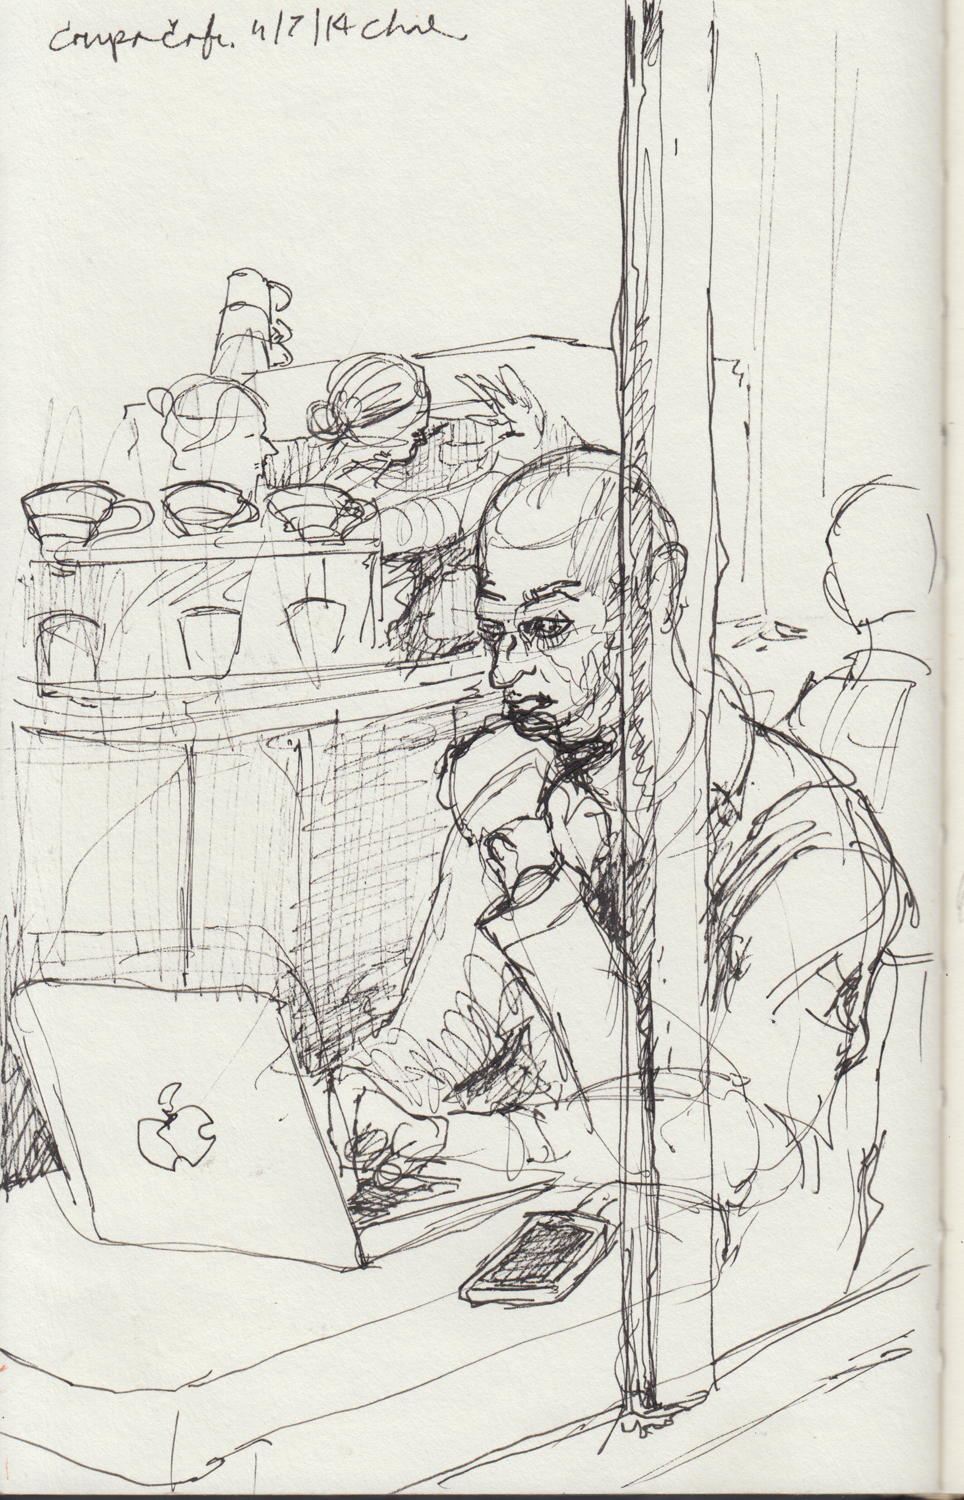 2014 - 11 - 07 - sketchbook - coupa cafe man .jpg